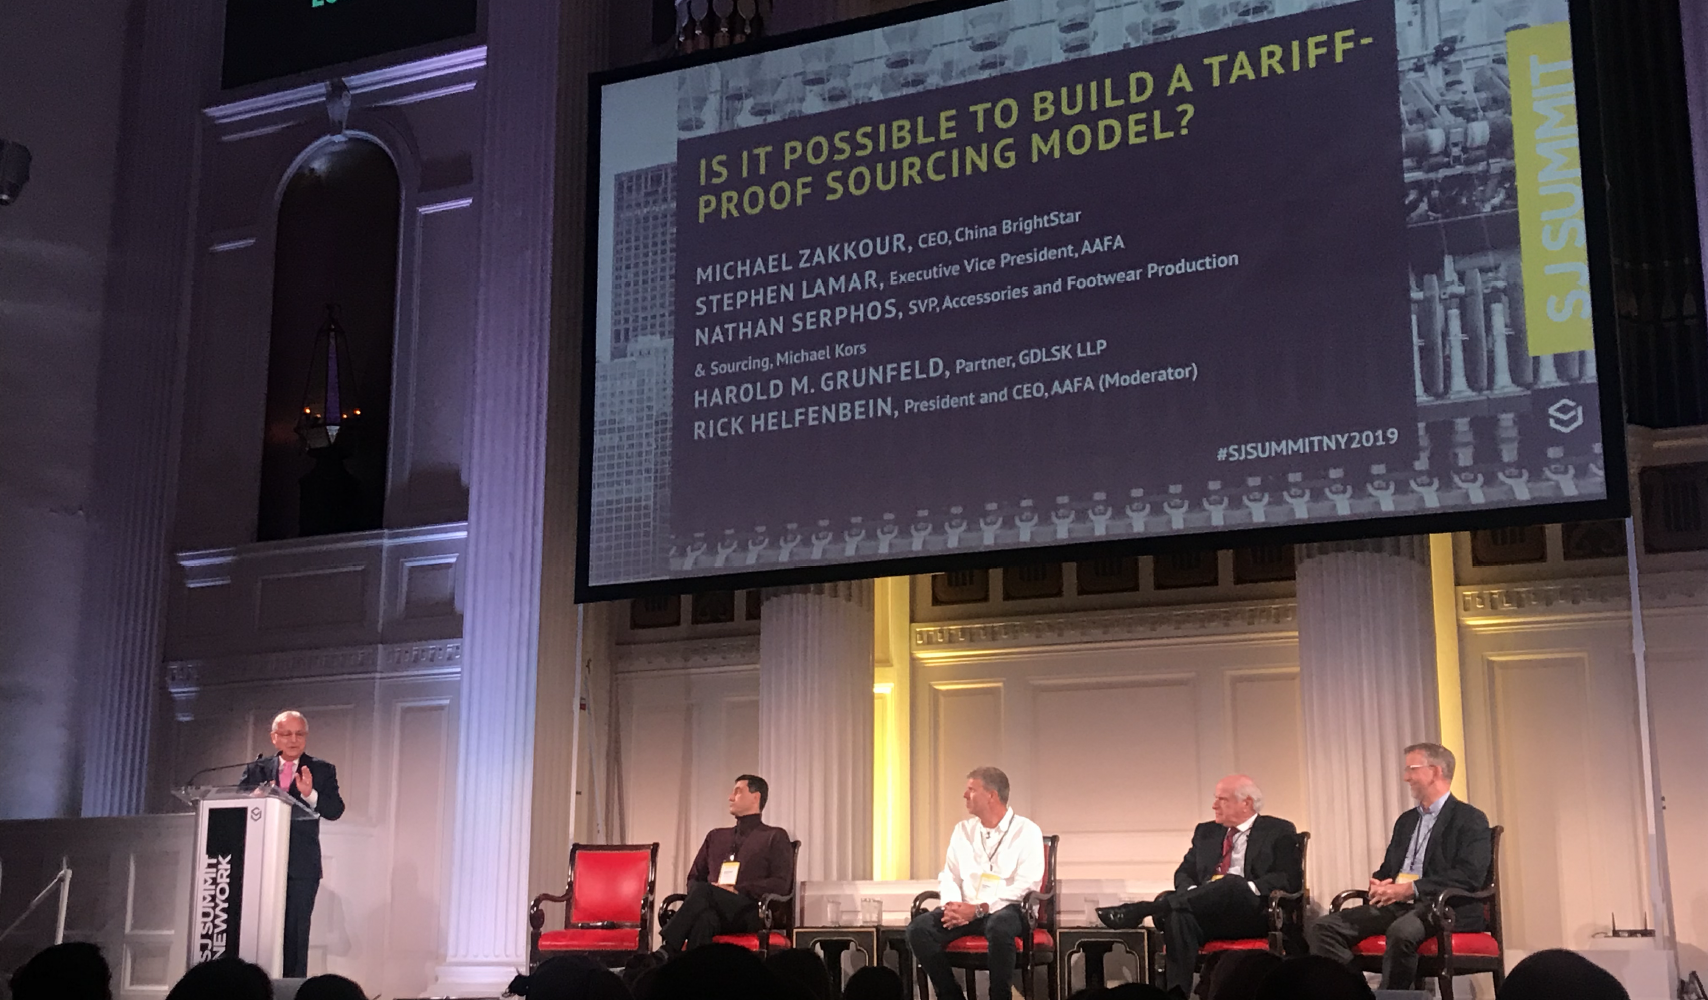 From left to right: Rick Helfenbein, President and CEO at AAFA (Moderator); Michael Zakkour, CEO & President at China BrightStar; Nathan Serphos, Senior Vice President of Accessories and Footwear Production & Sourcing at Michael Kors; Harold M. Grunfeld, Partner at GDLSK; Stephen Lamar, Executive Vice President at AAFA Source: Coresight Research